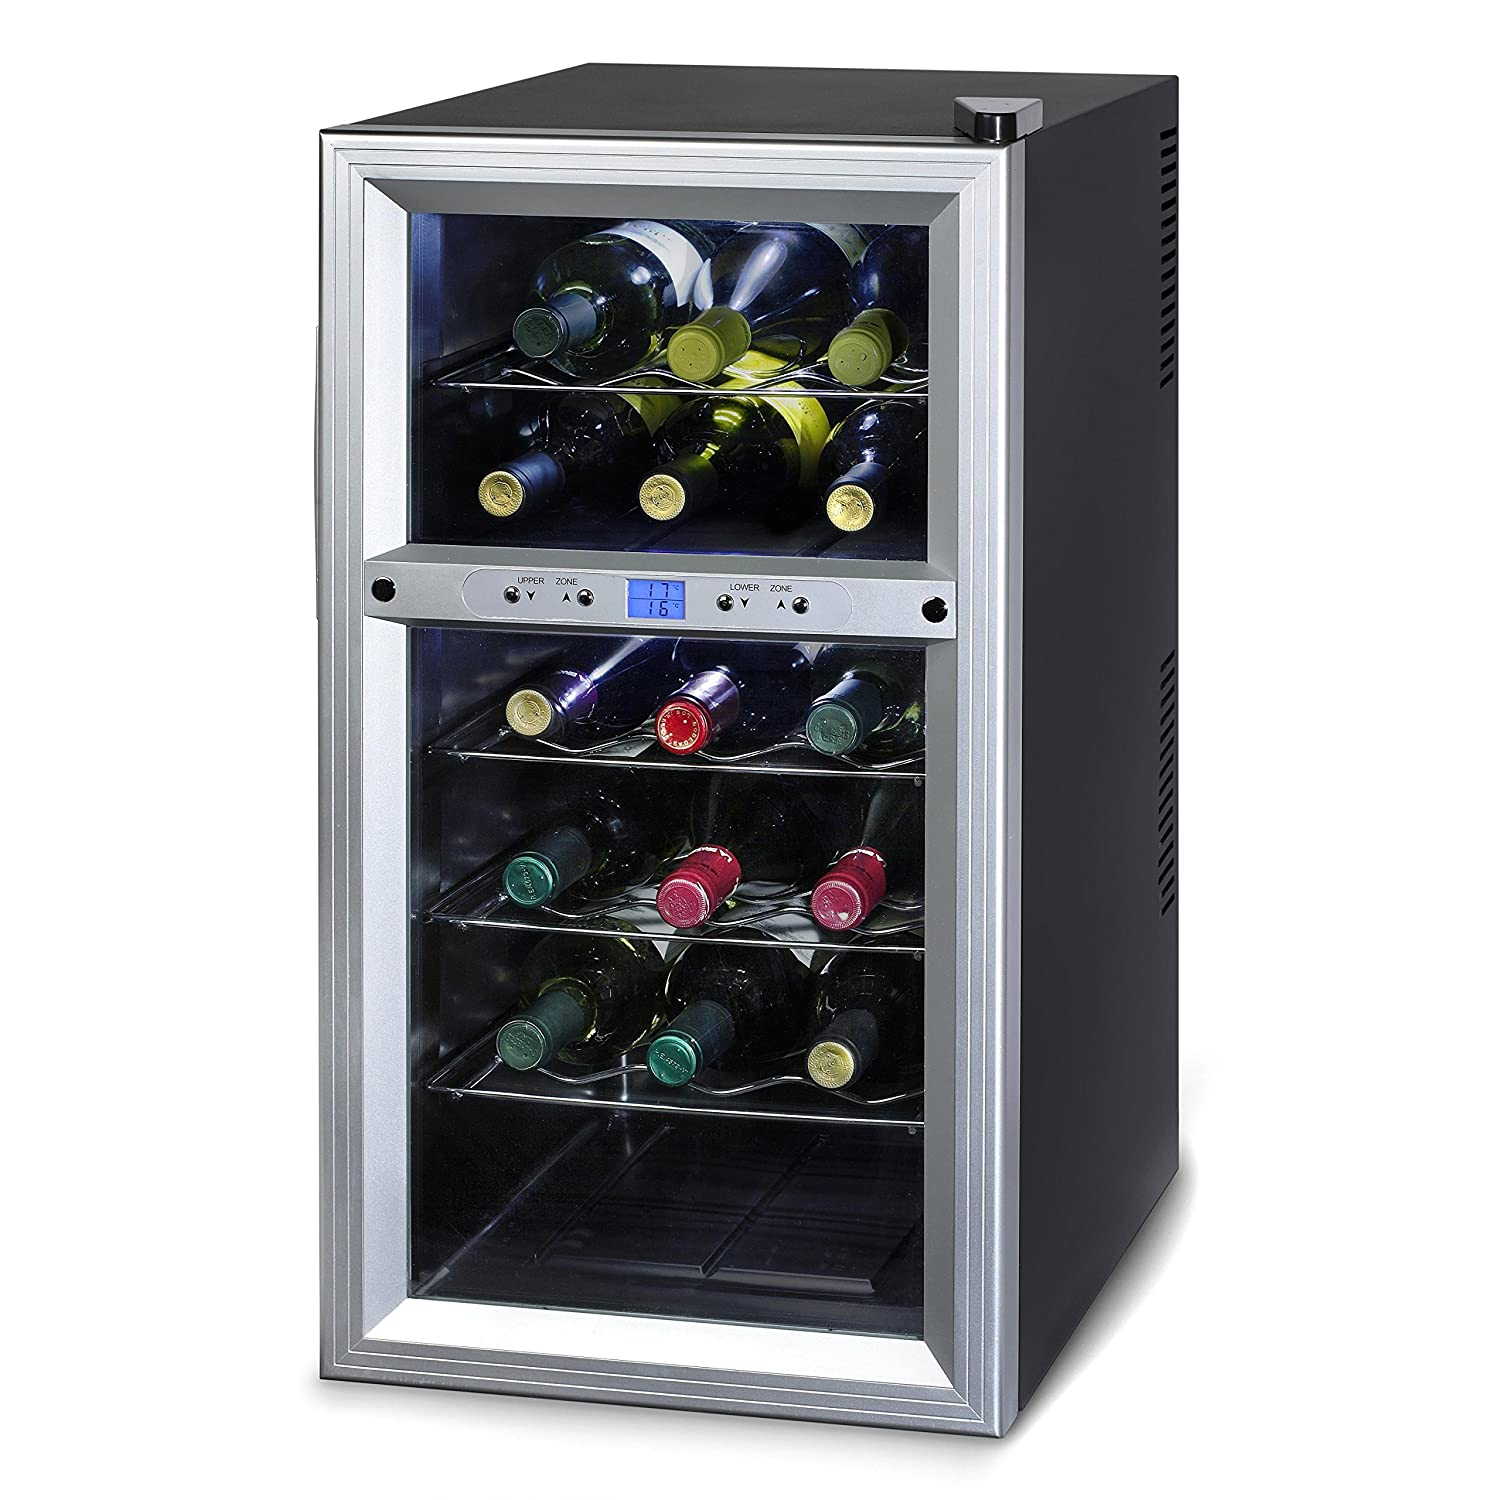 Kalorik Thermoelectric Dual-Zone 18-Bottle Ventilated Wine Cooler, Stainless Steel/Black WCL20629